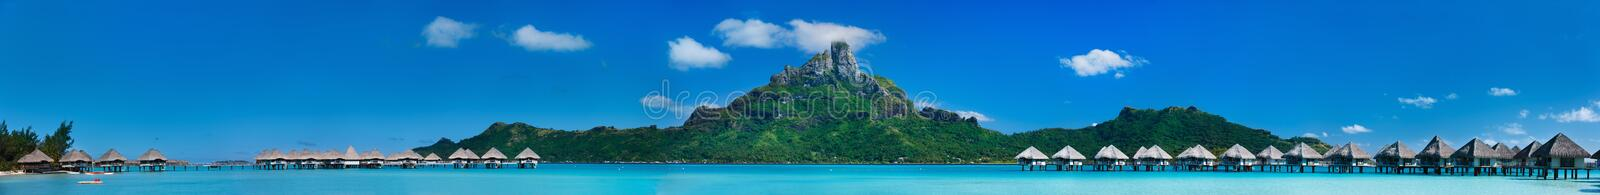 Panorama de Bora Bora photo stock